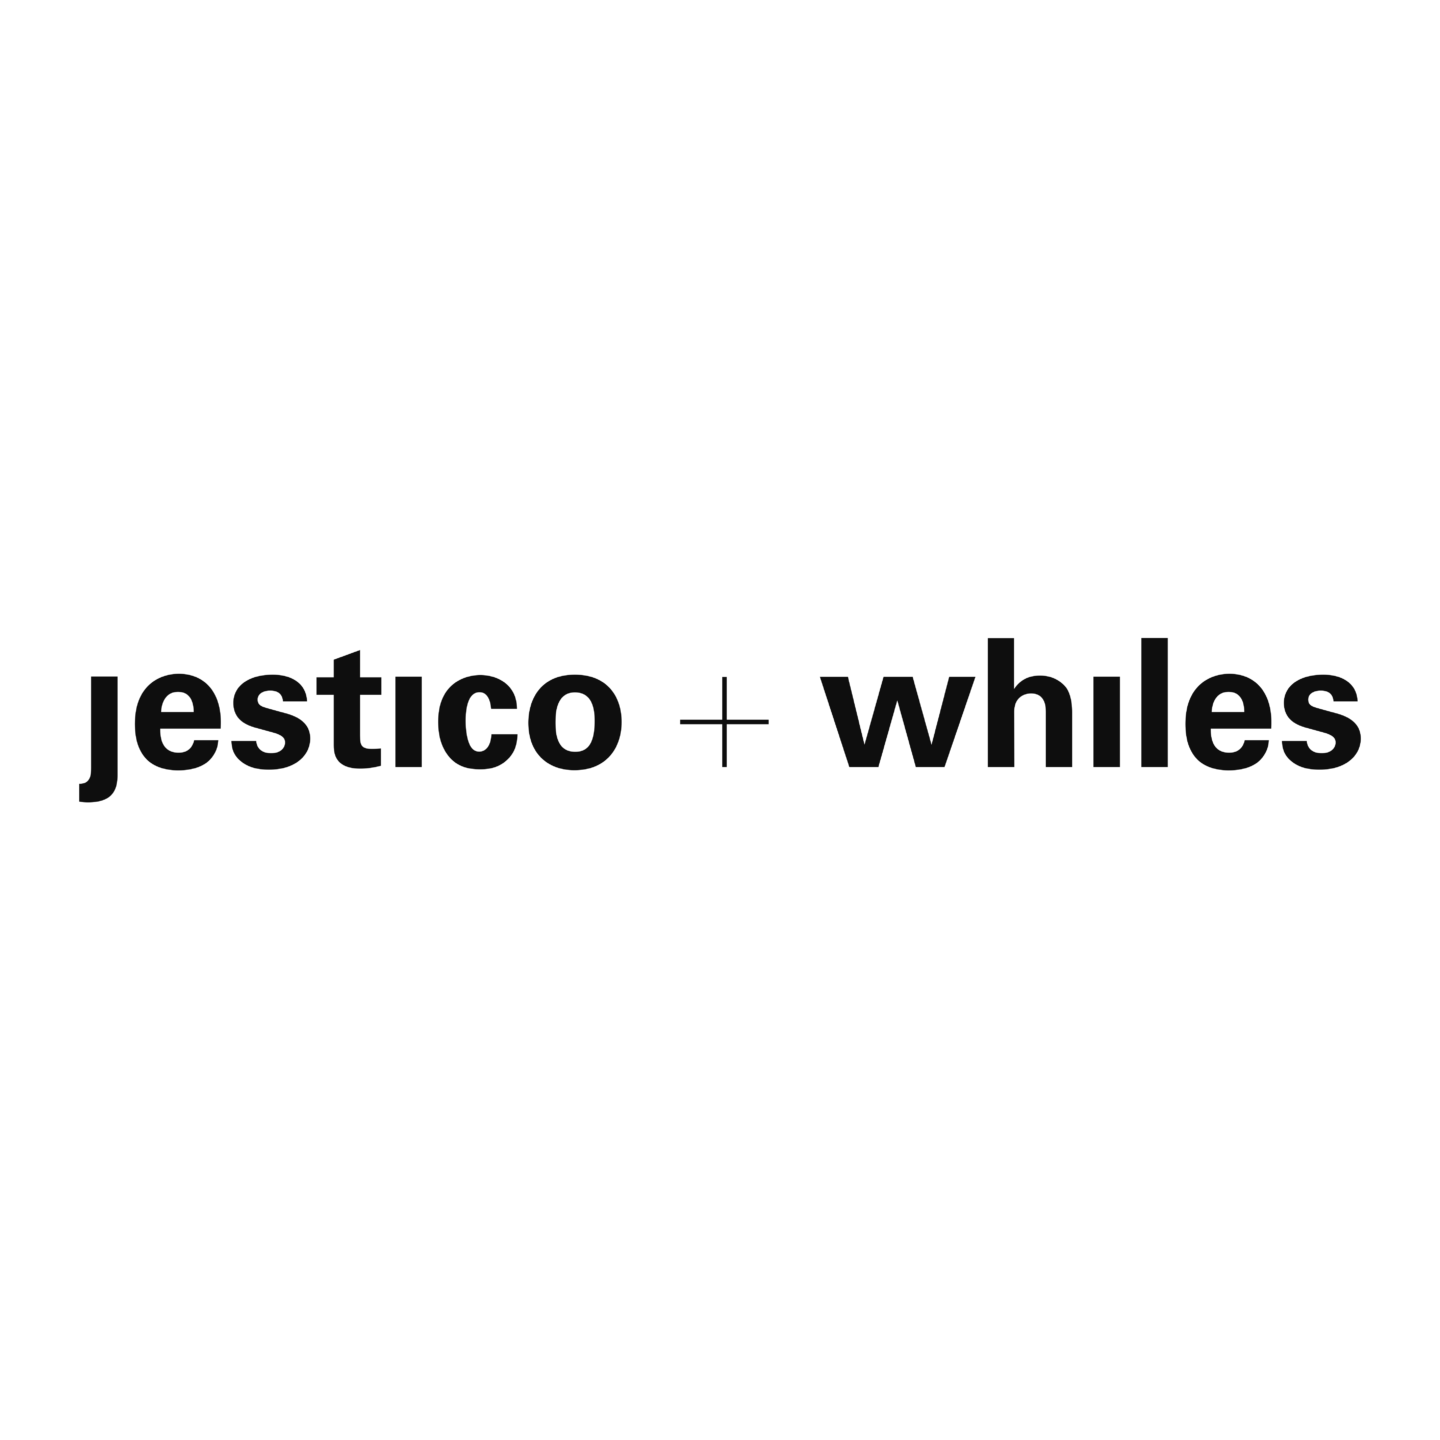 Logo for Jestico and Whiles